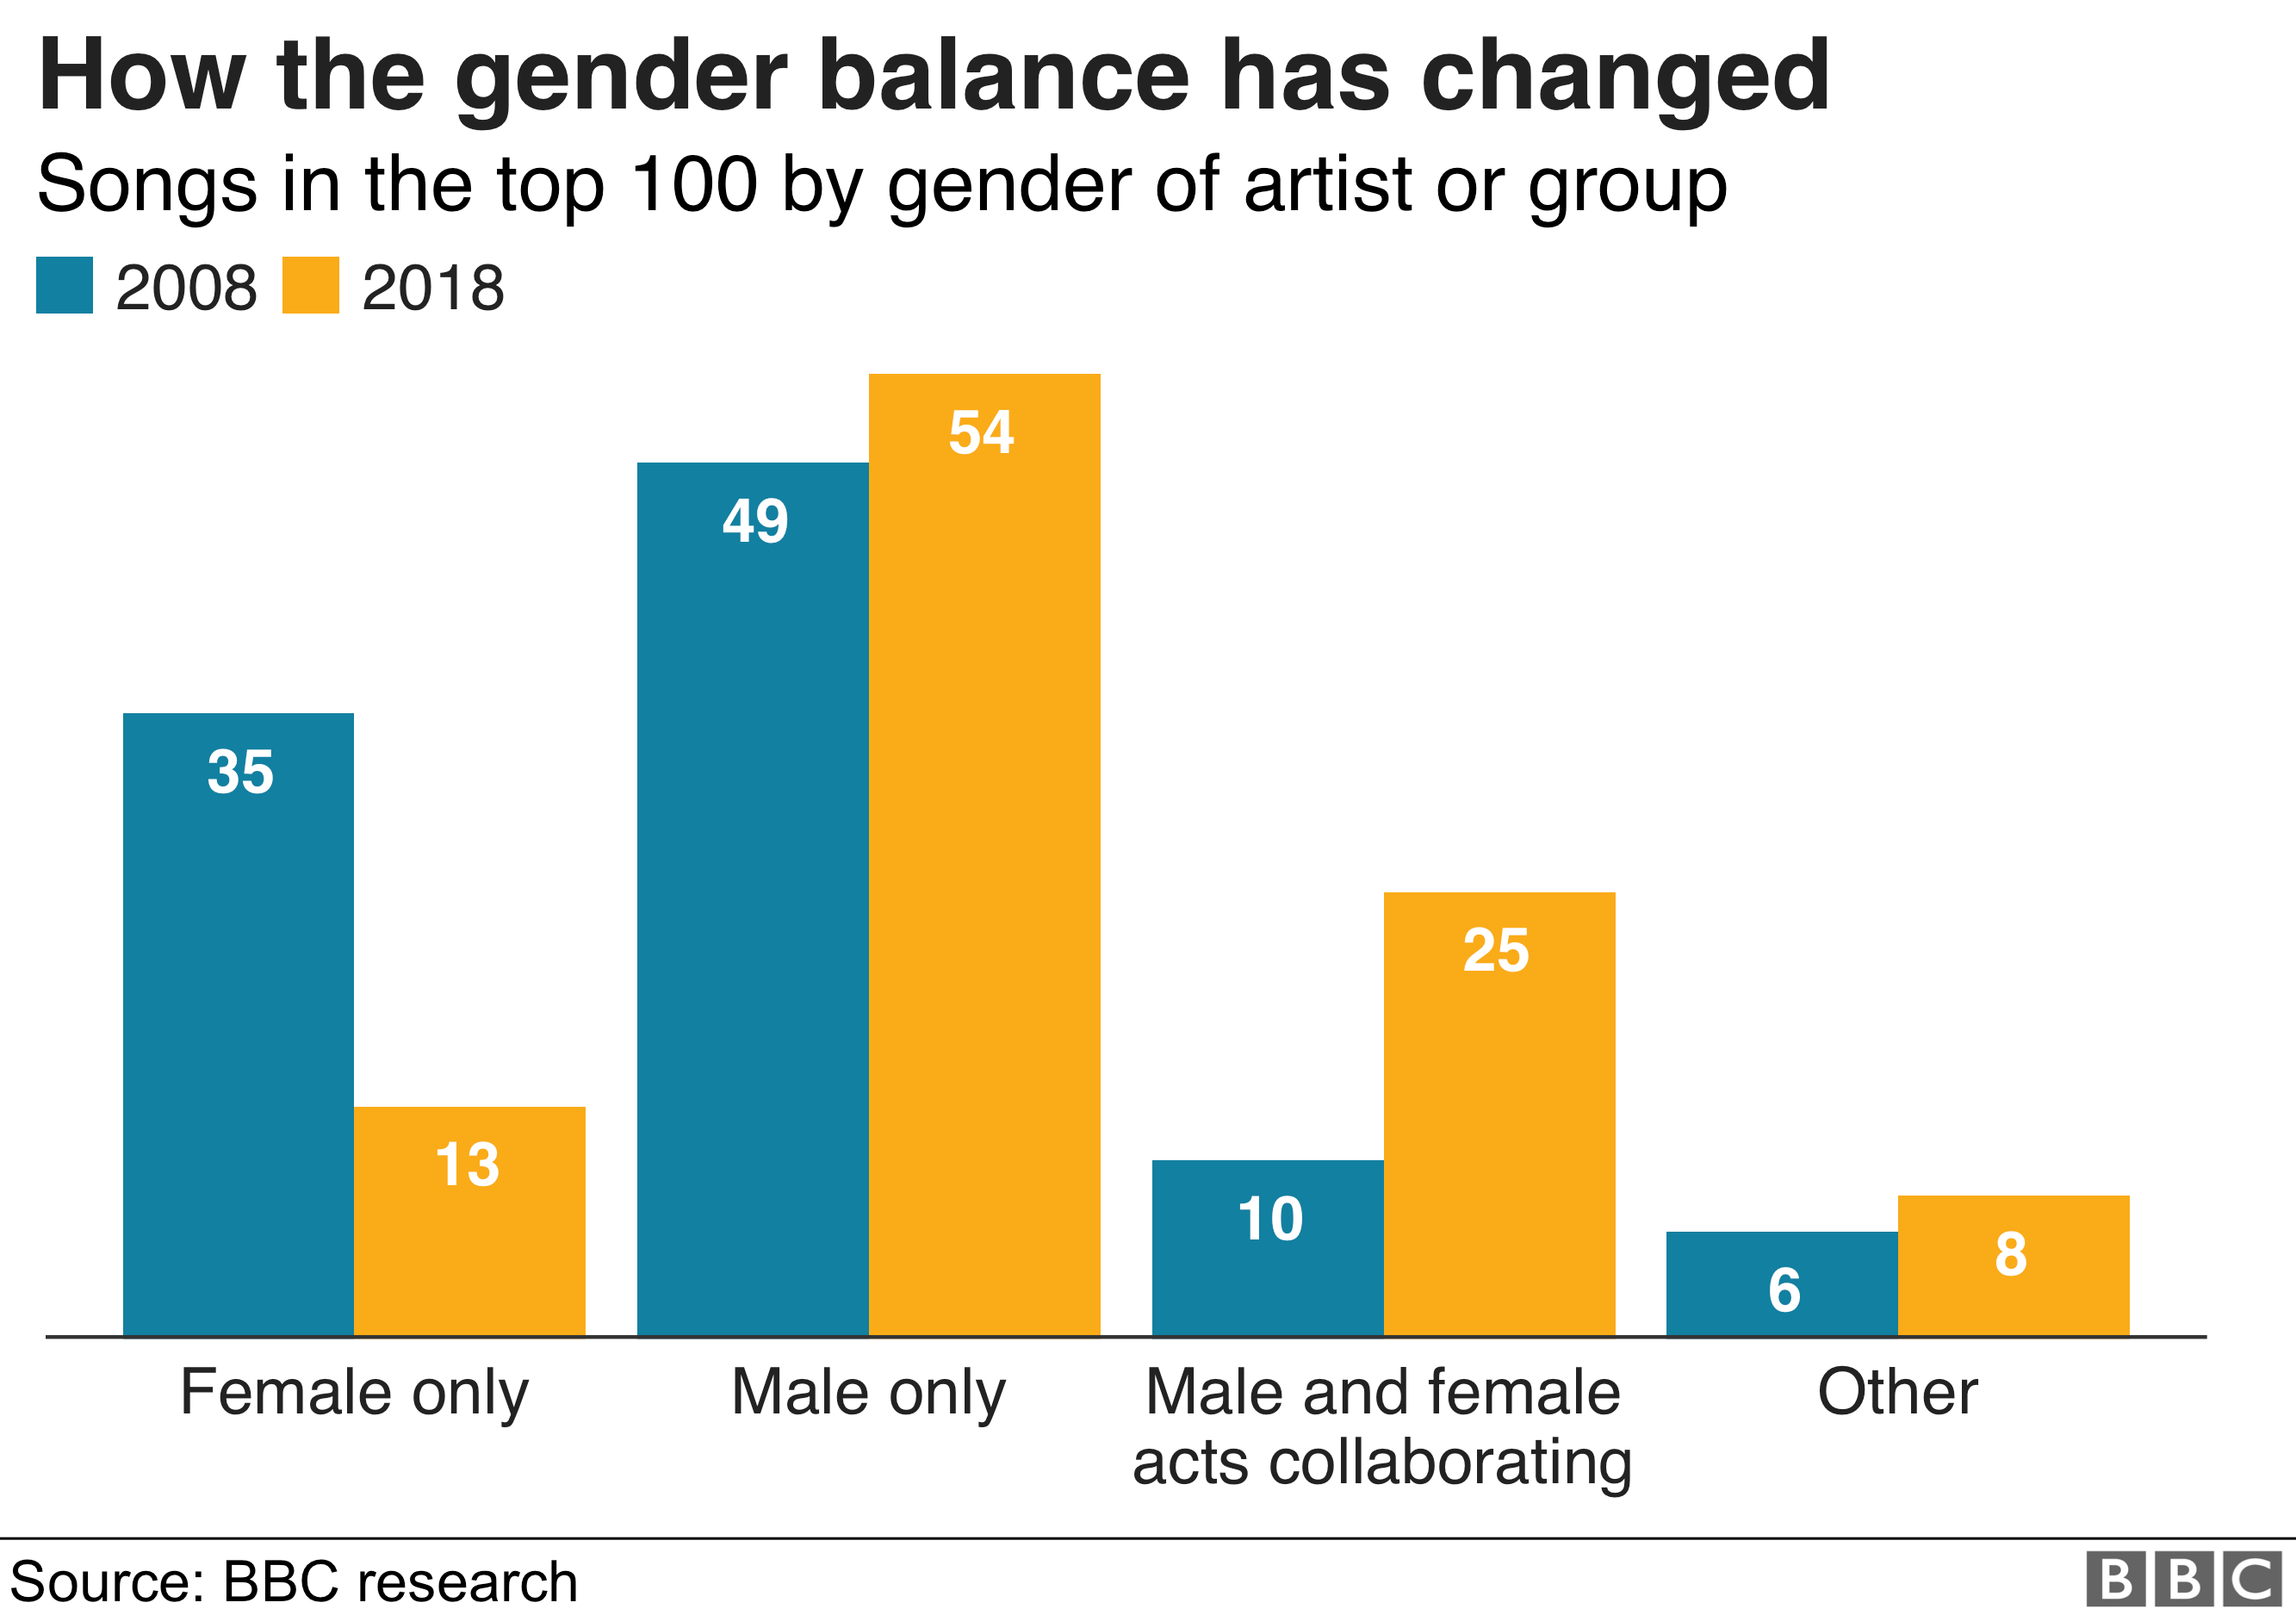 Chart showing how the gender balance has changed 2008-2018